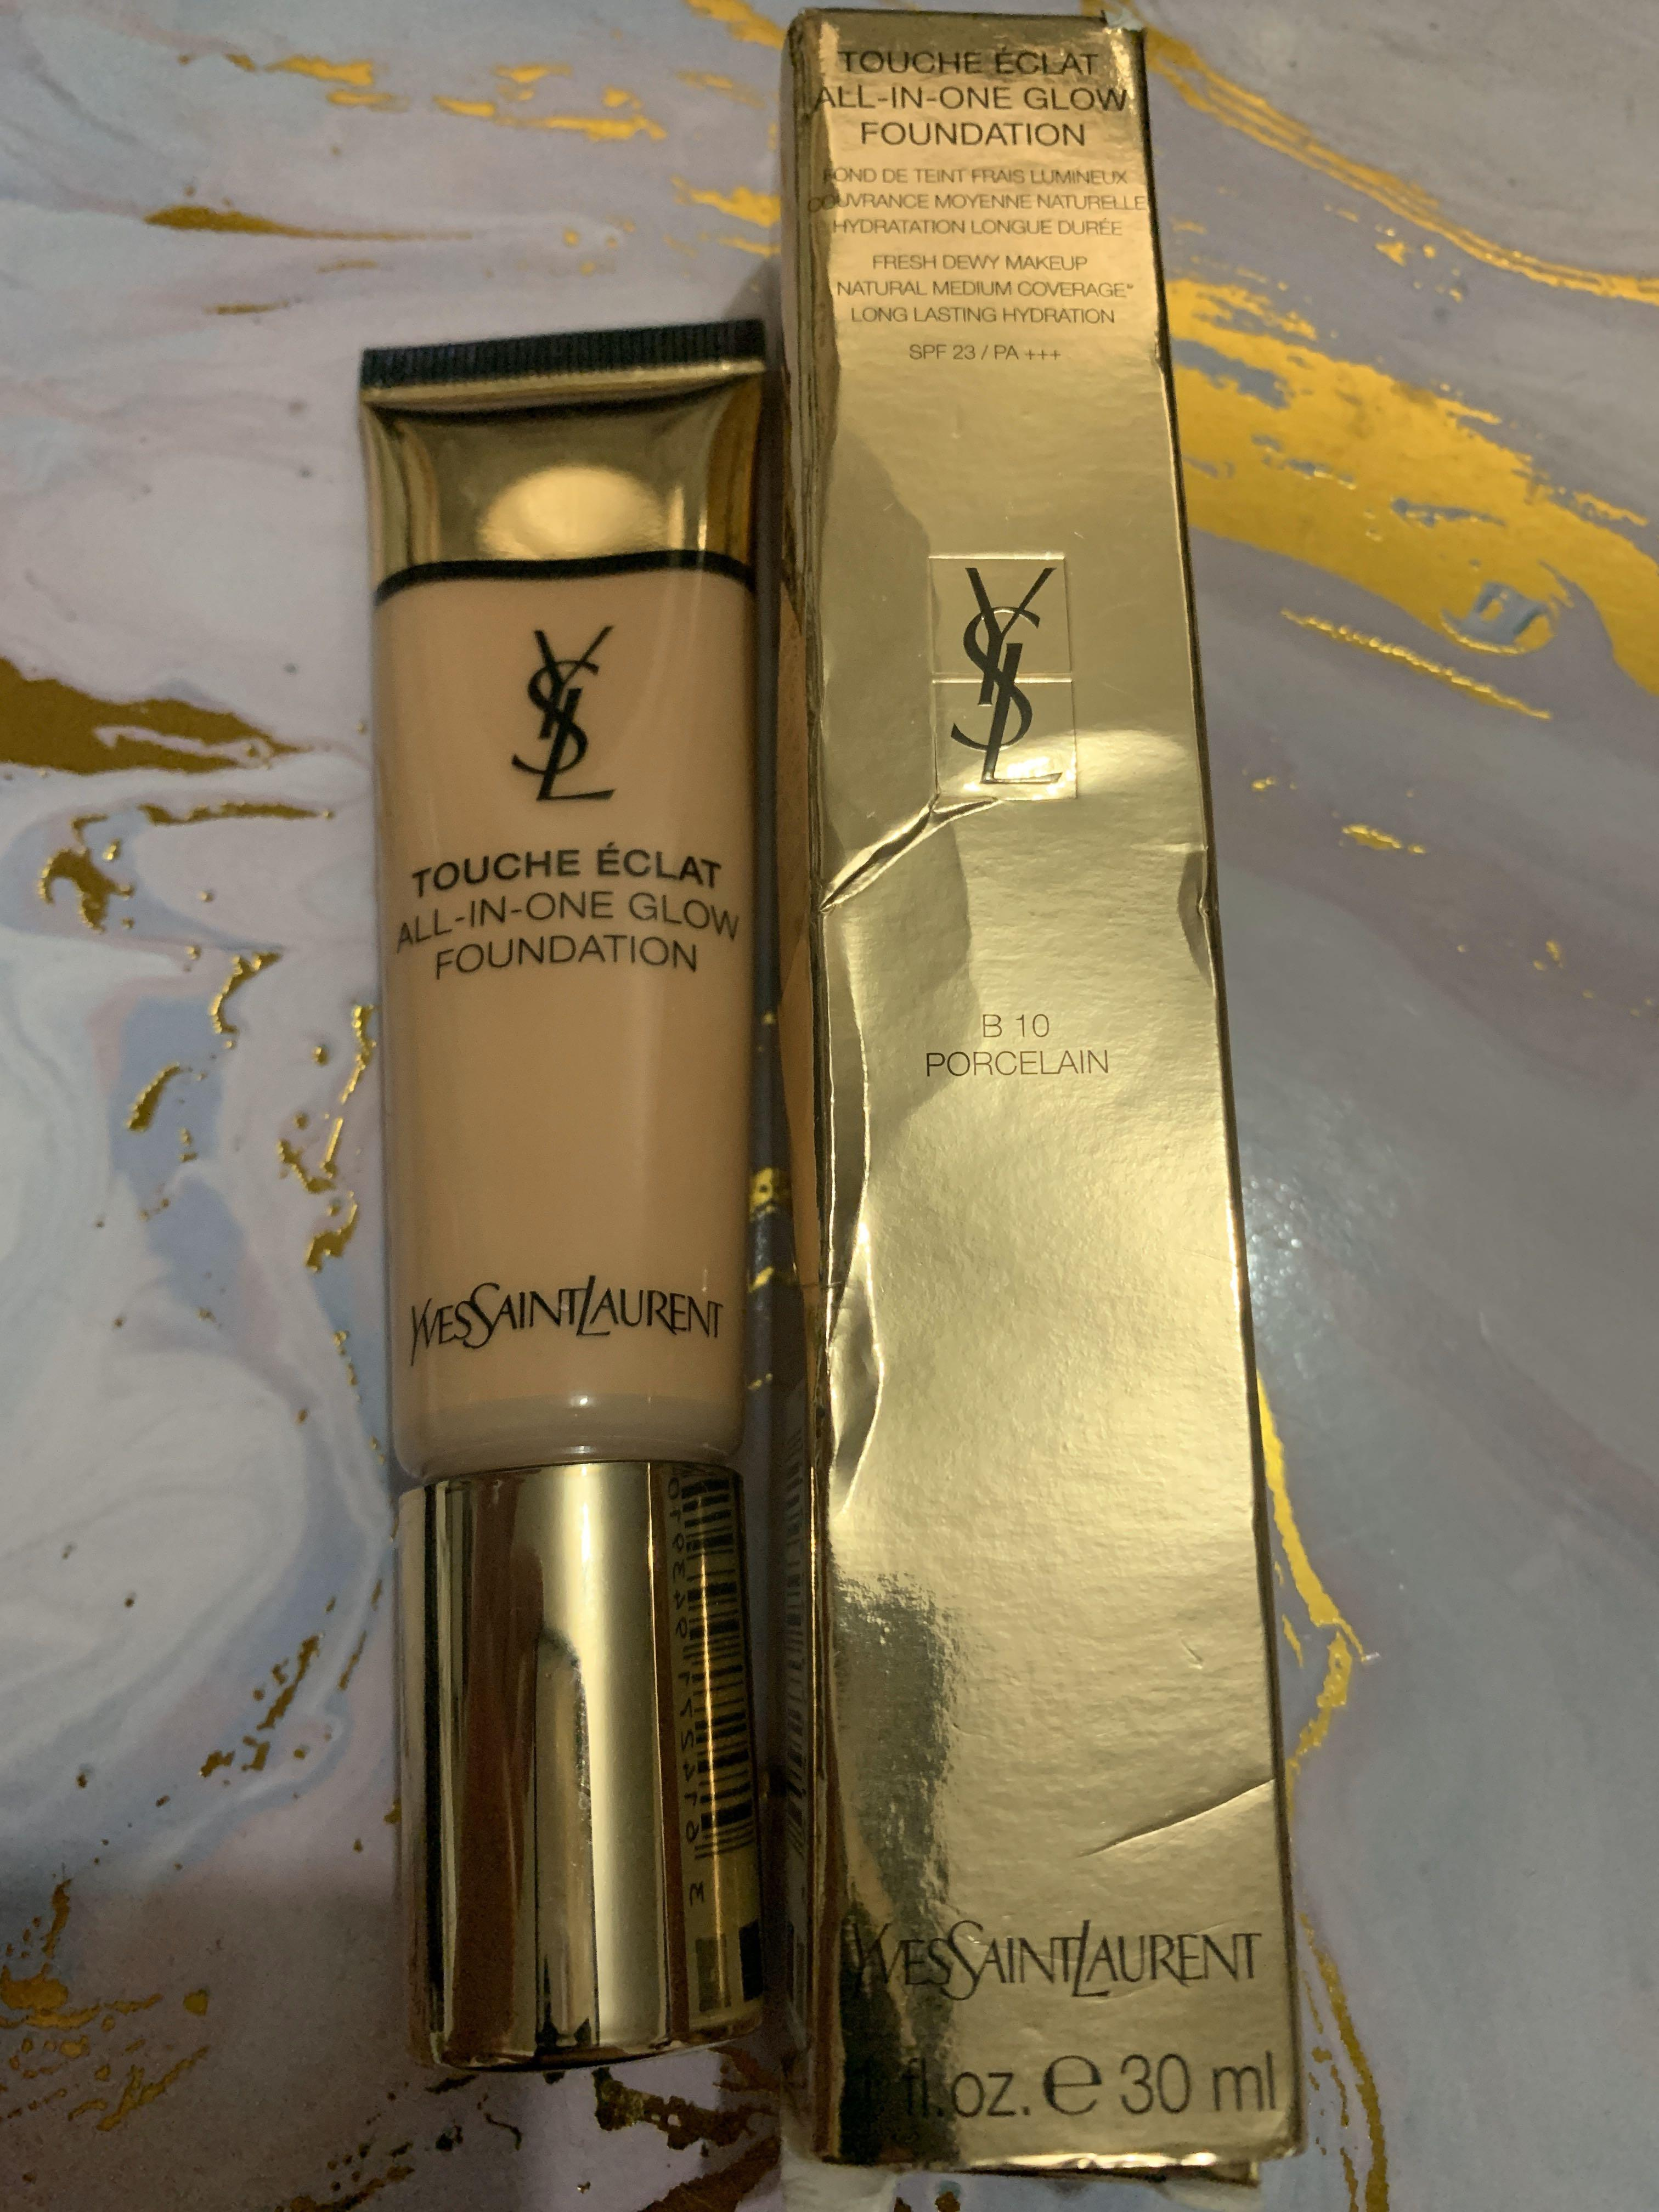 YSL Touche Eclat All in One Glow foundation in B10 Porecelain